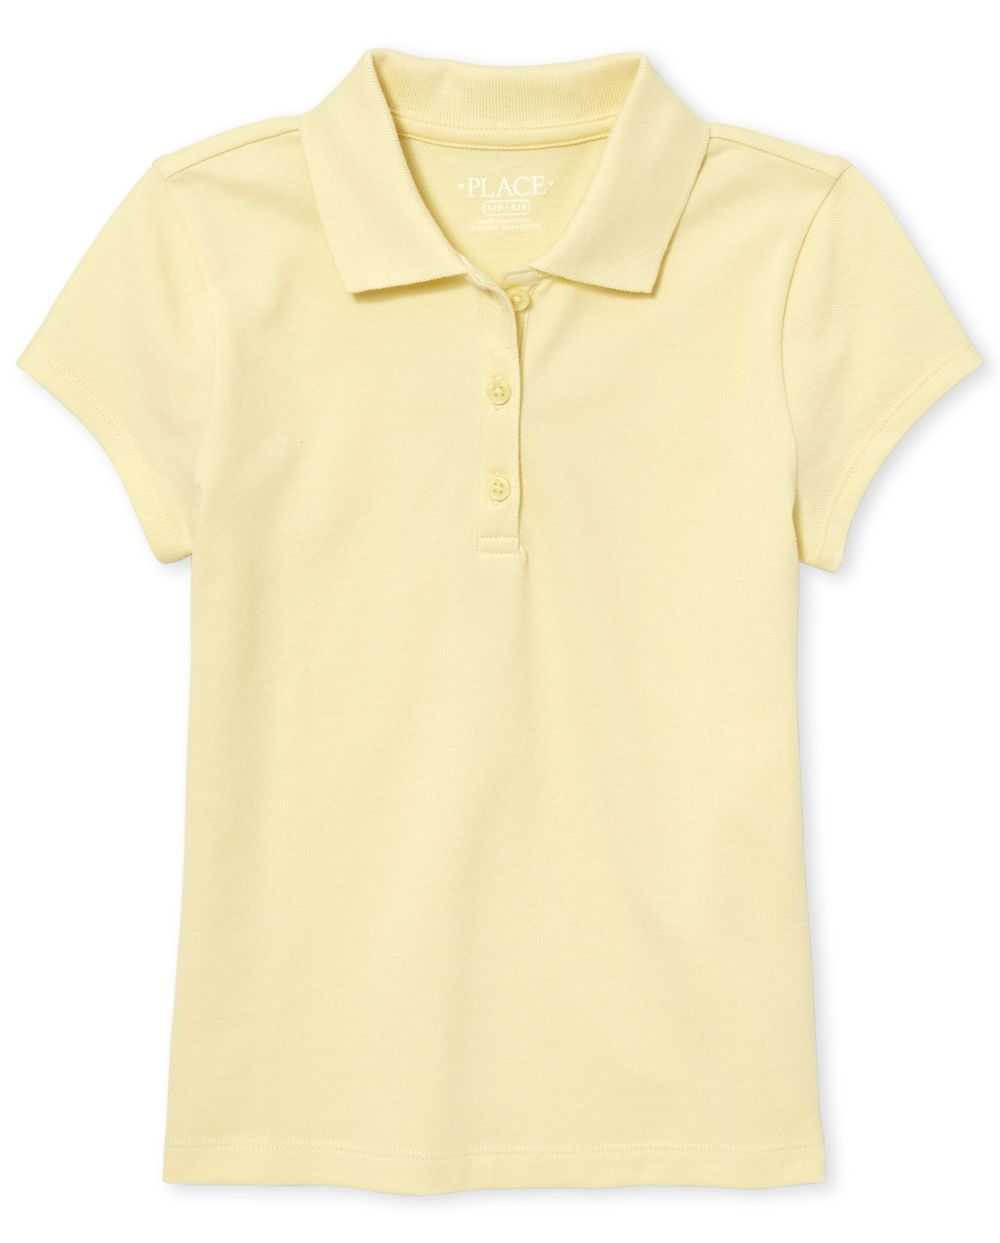 Girls Uniform Pique Polo